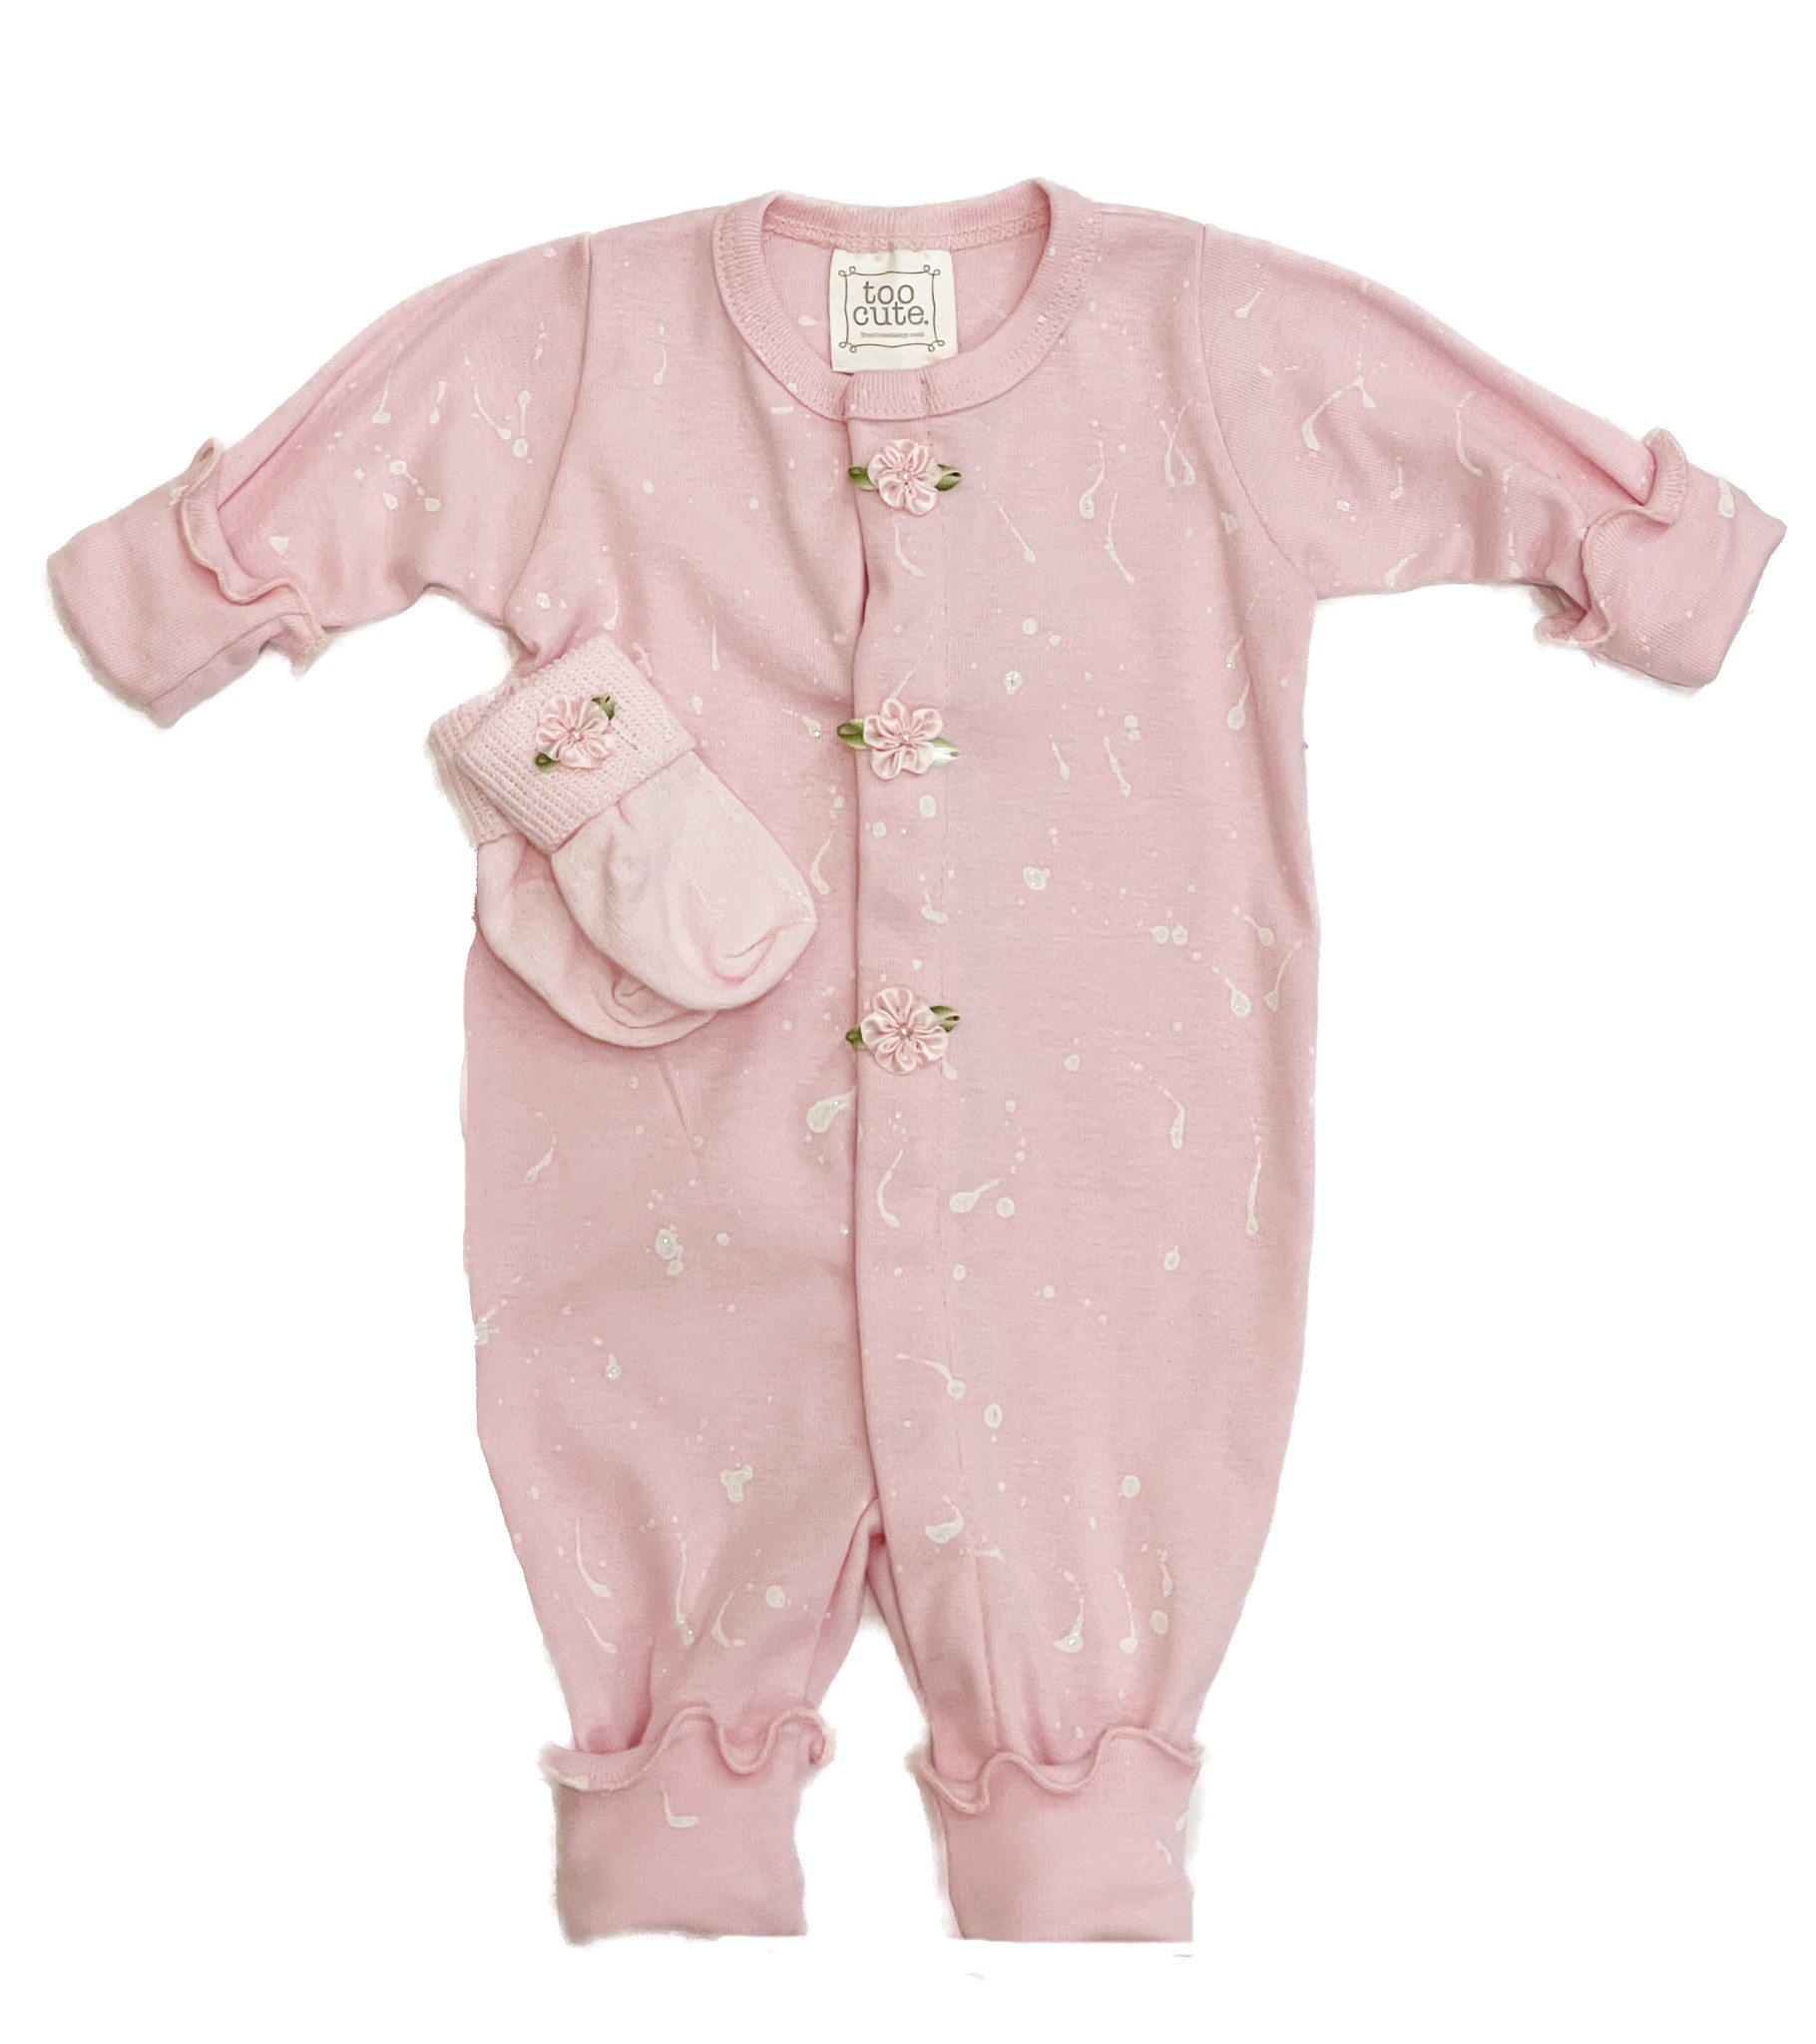 Too Sweet Pink/Wht Splatter Pearl Flower Outfit